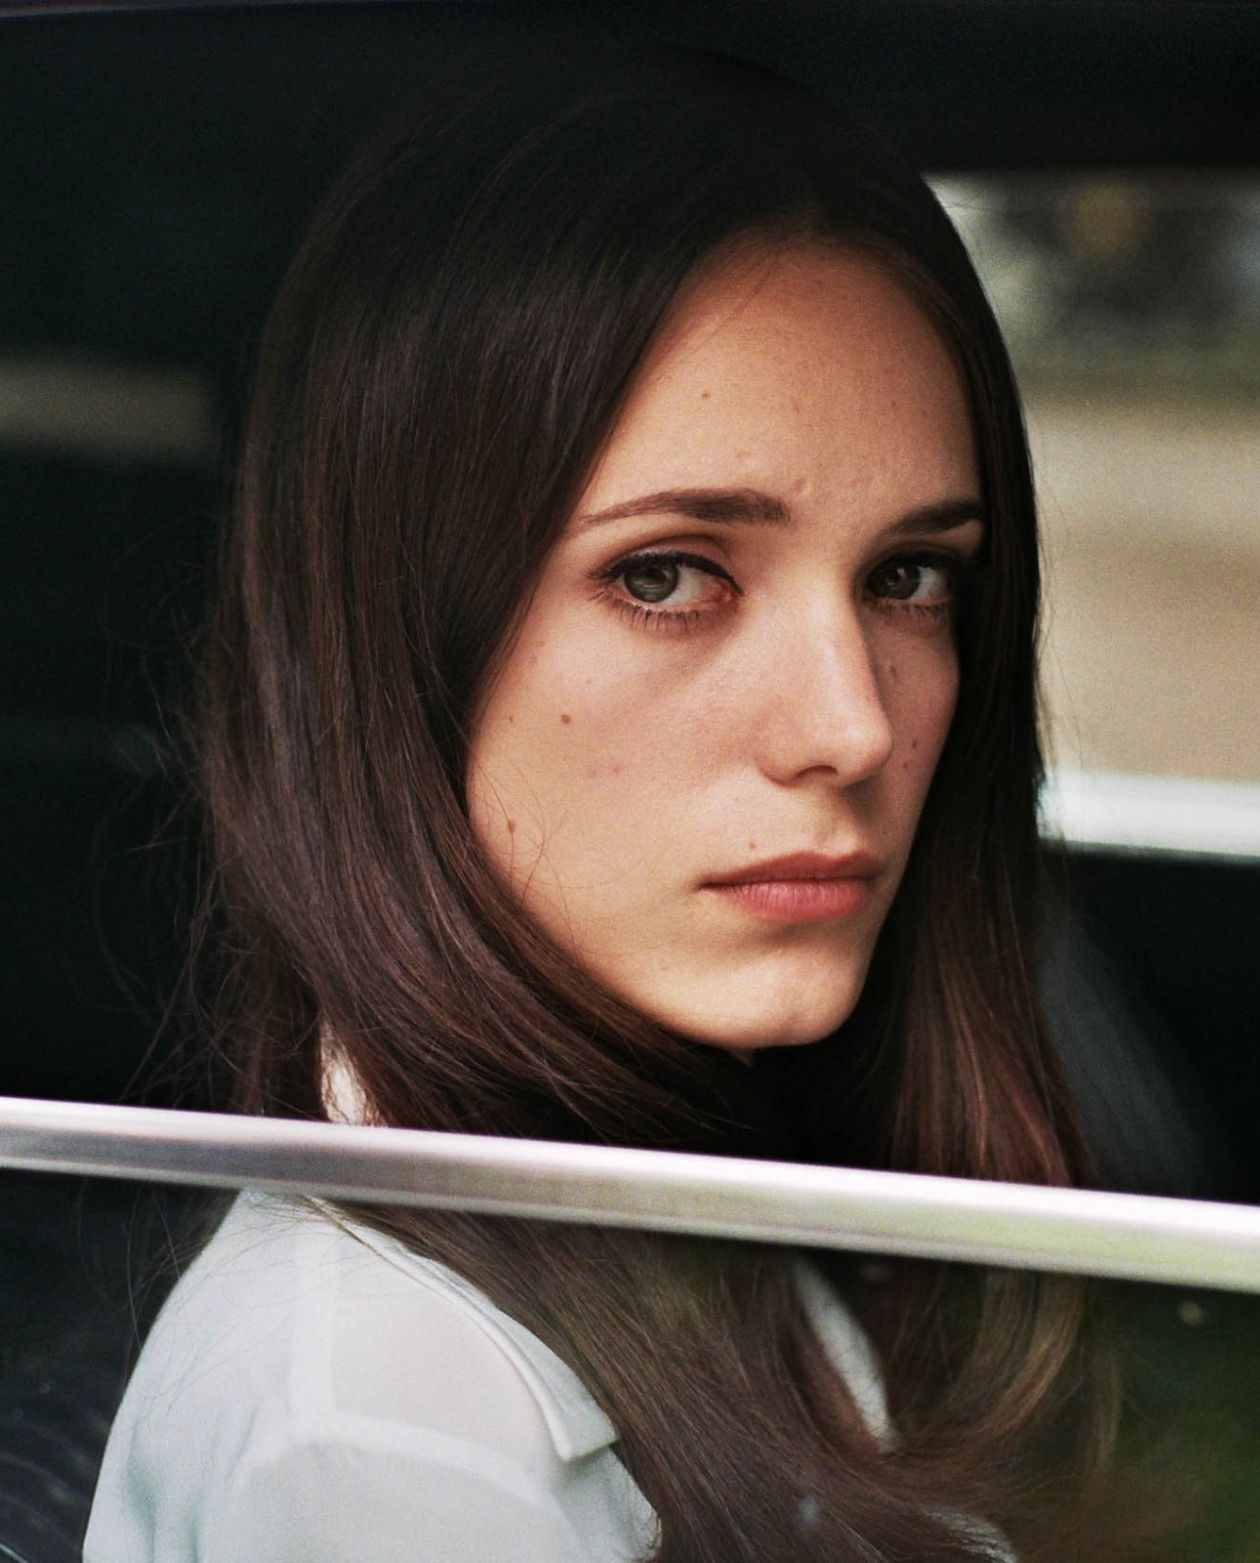 Stacy Martin actress | La dame dans l'auto avec des lunettes et un fusil / The Lady in the Car with Glasses and a Gun / Joann Sfar 2015